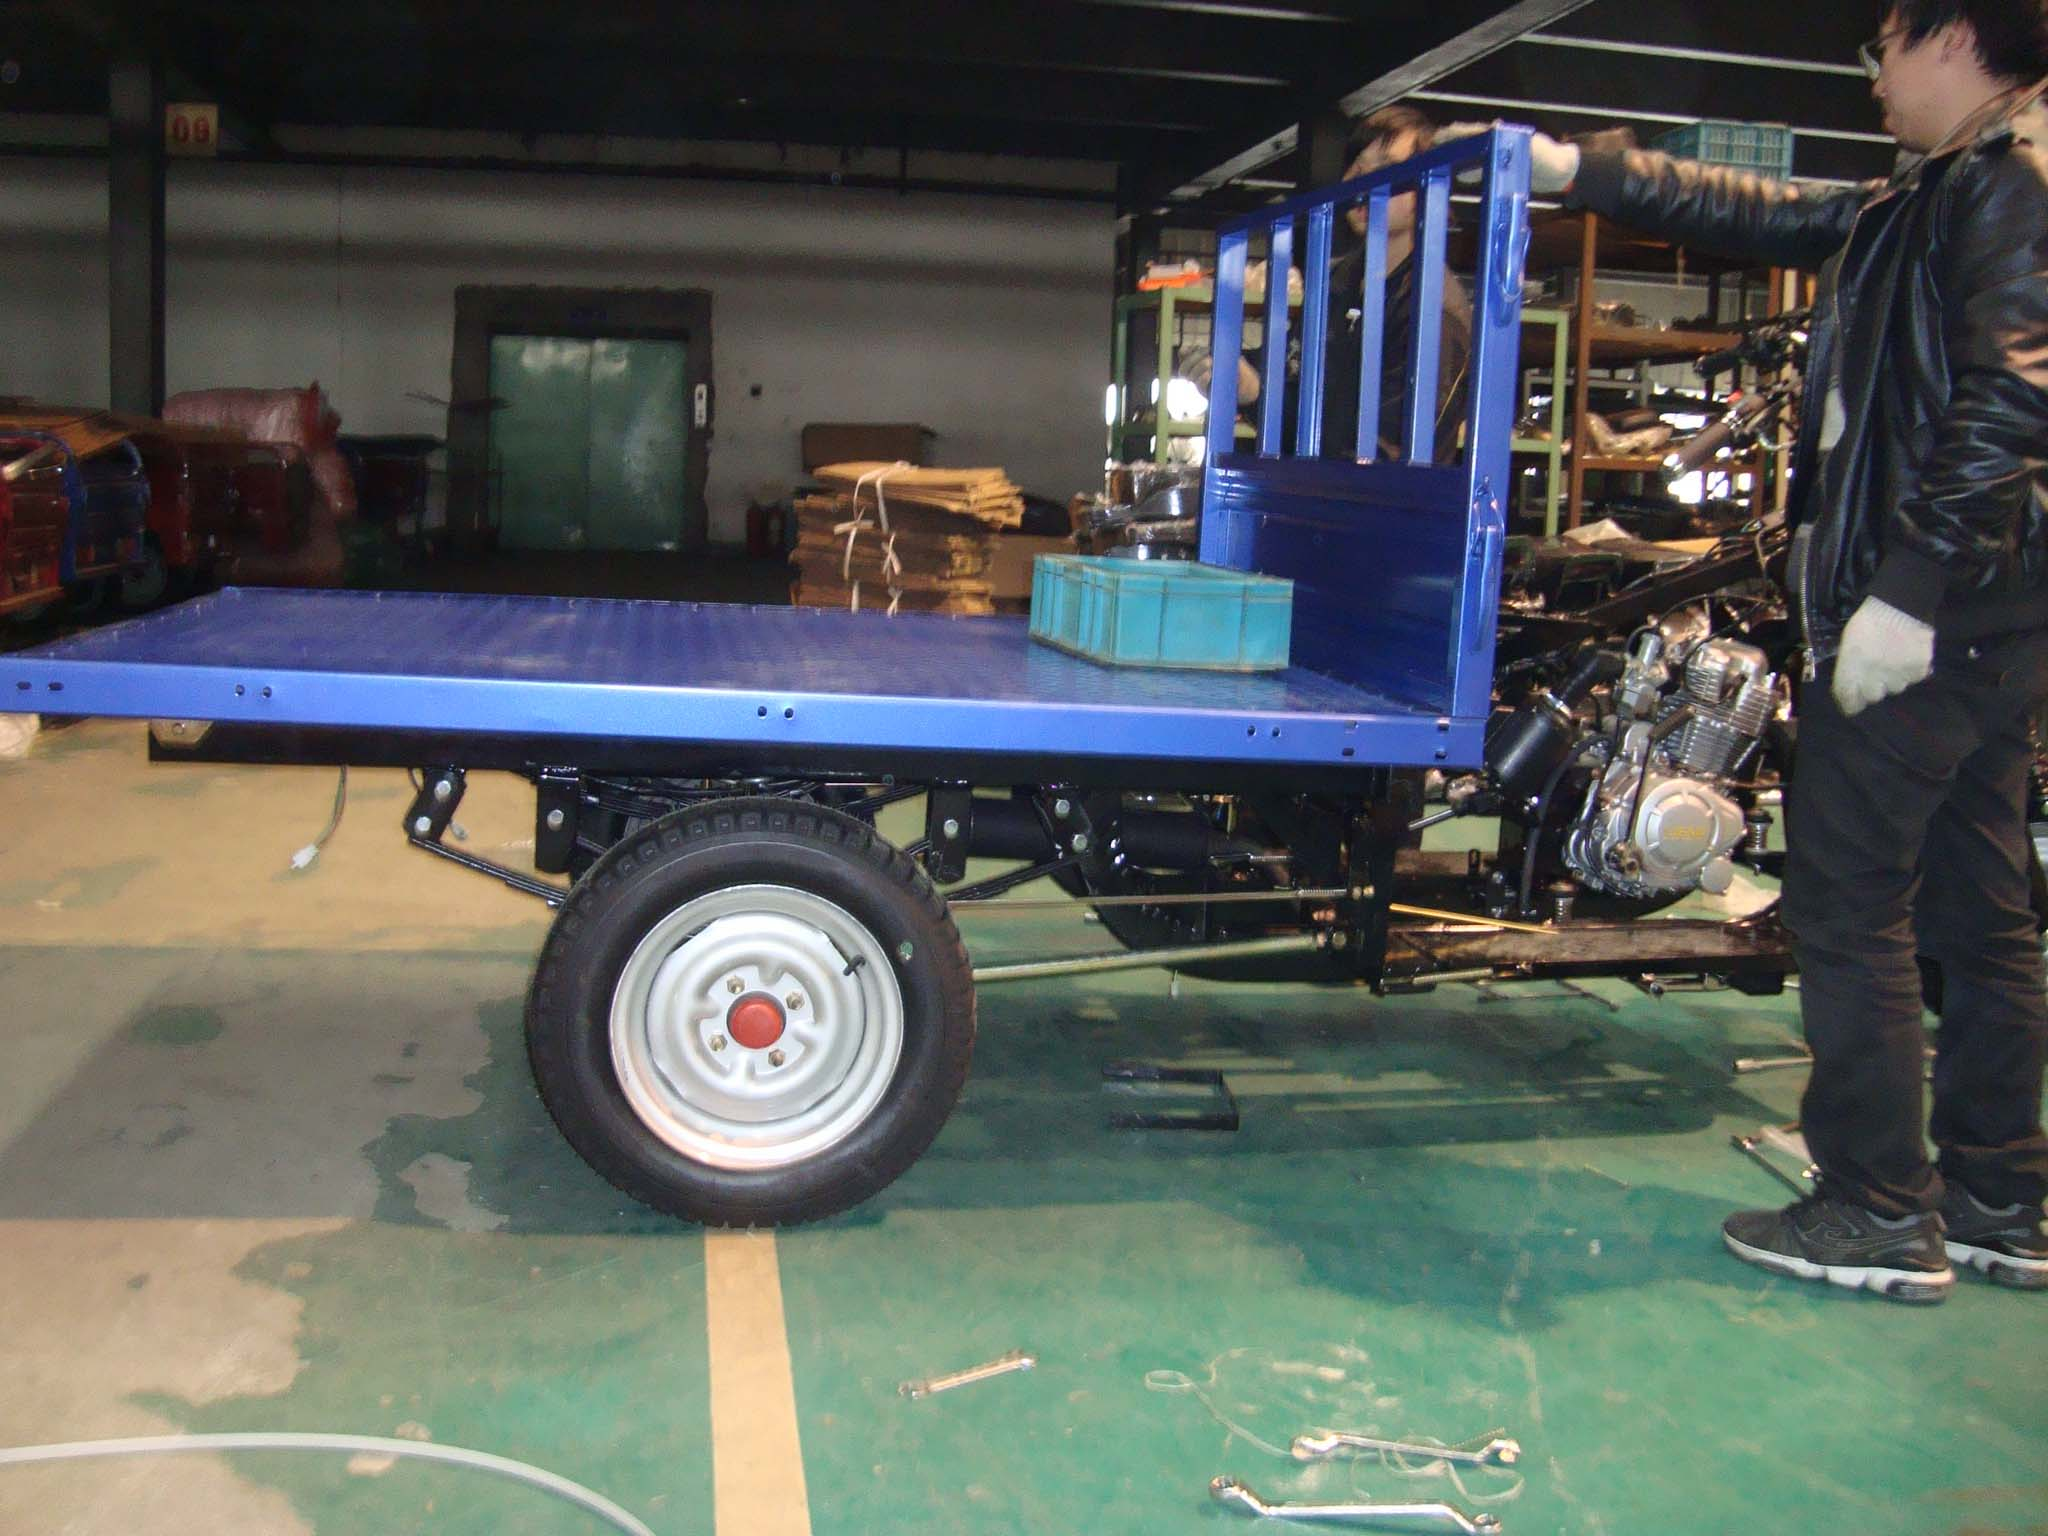 Assembly a tricycle